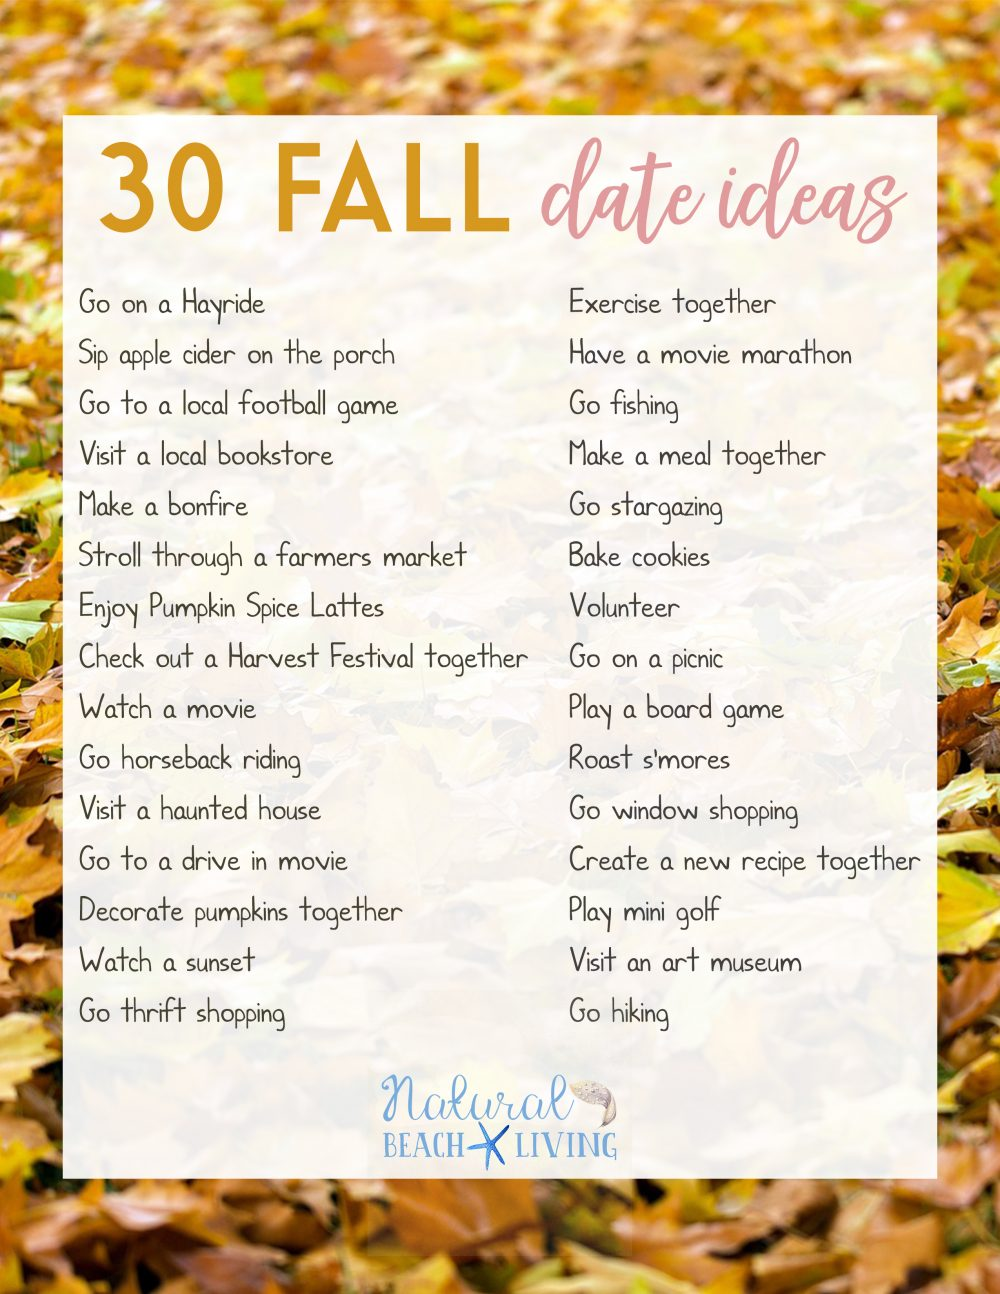 Fun Date Night Ideas For Fall Natural Beach Living